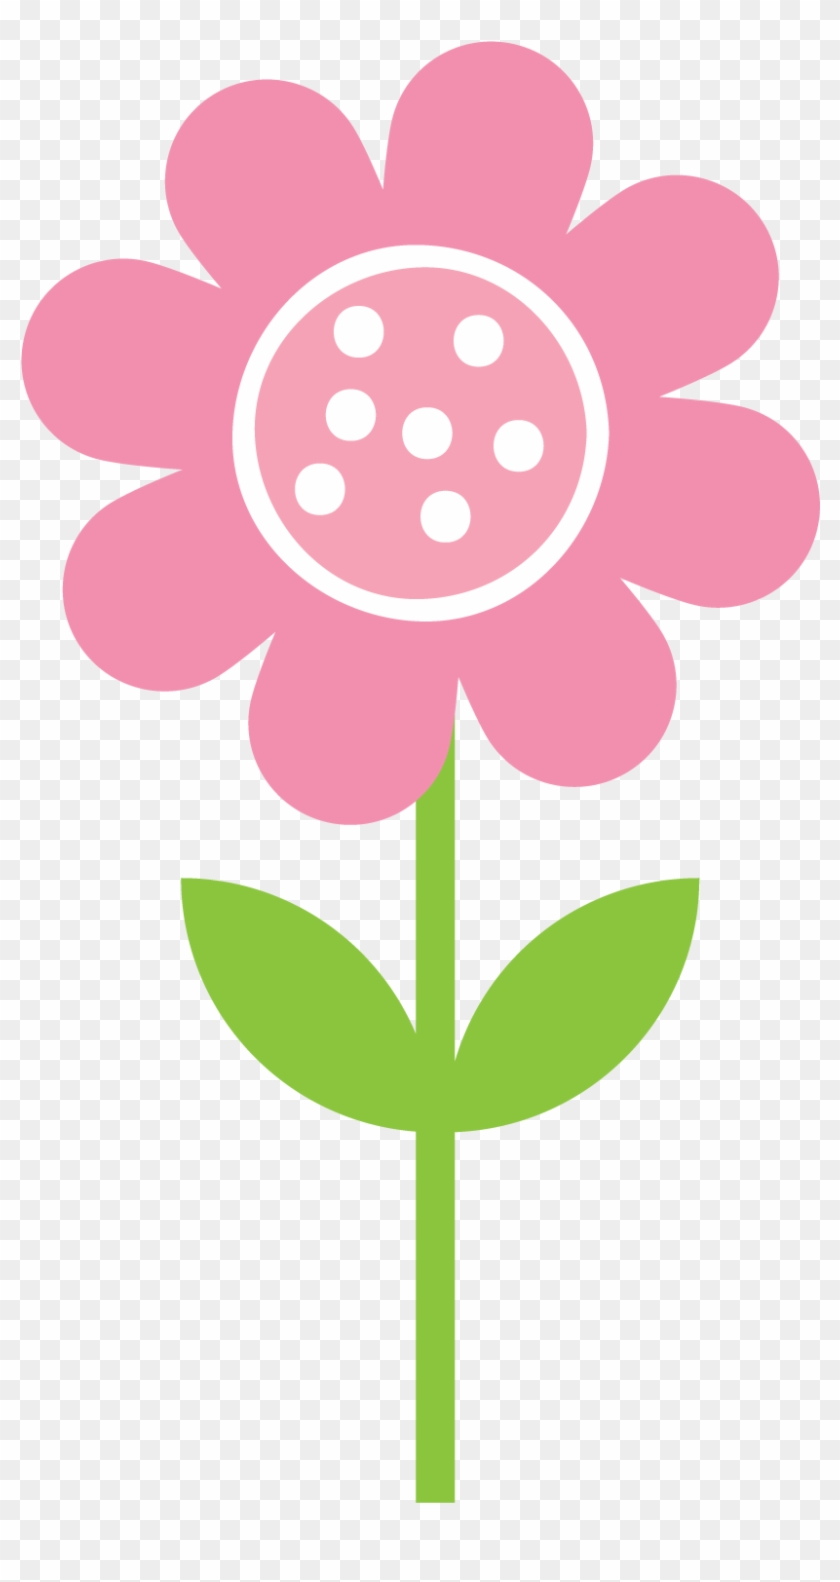 Flower Stencils, Lady Bug, Art Flowers, Project Life, - ดอกไม้ Clipart #74122